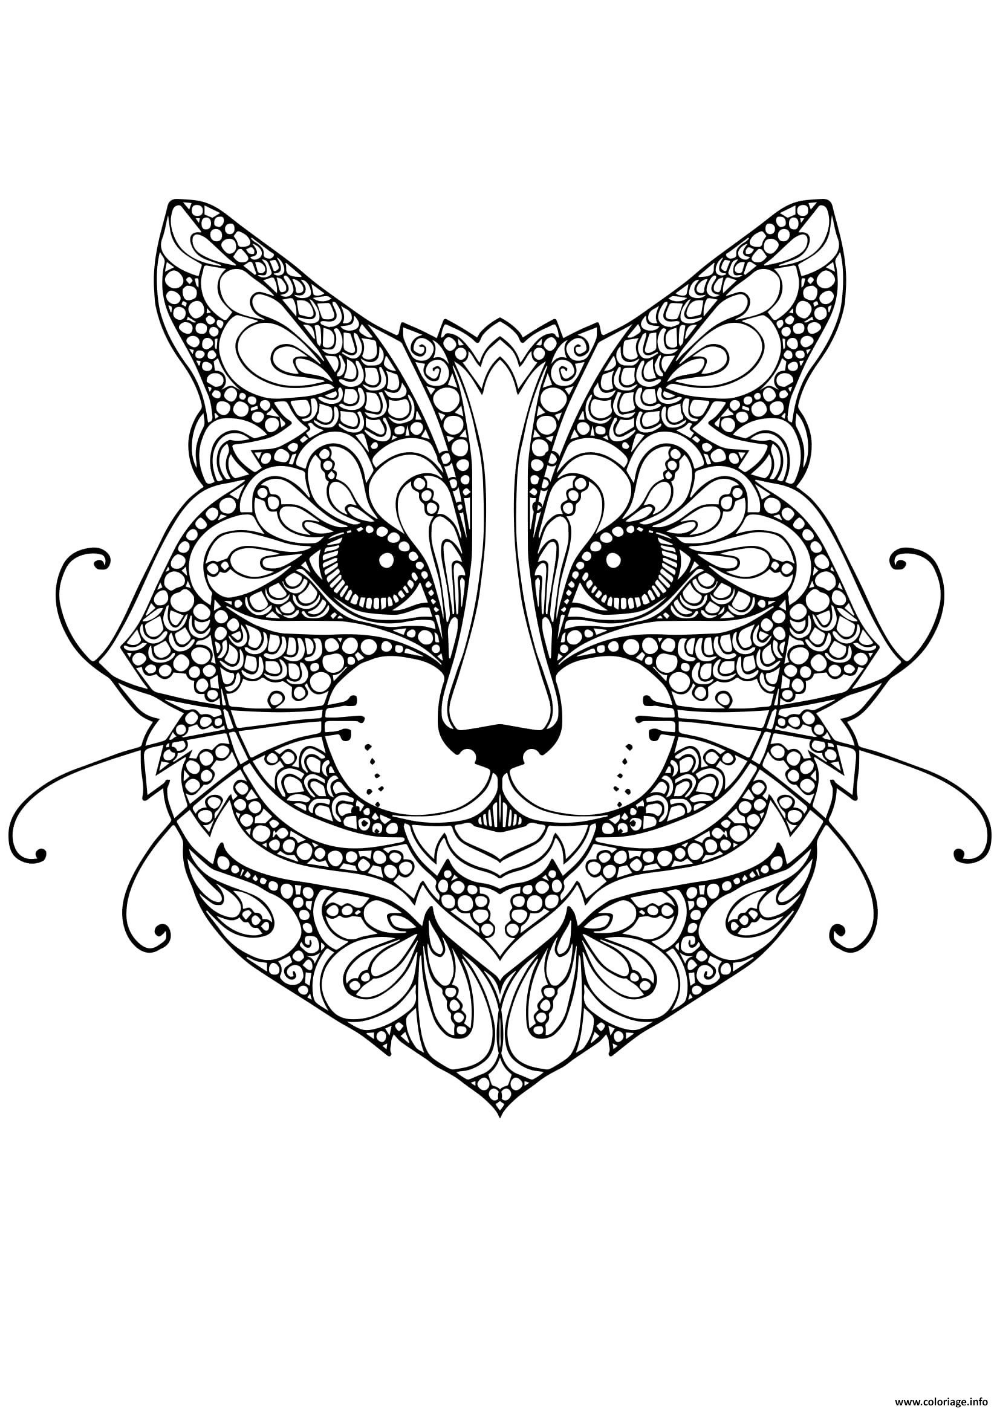 Photo Coloriage Mandala Animaux Chat Mignon Coloriage Anti Stress